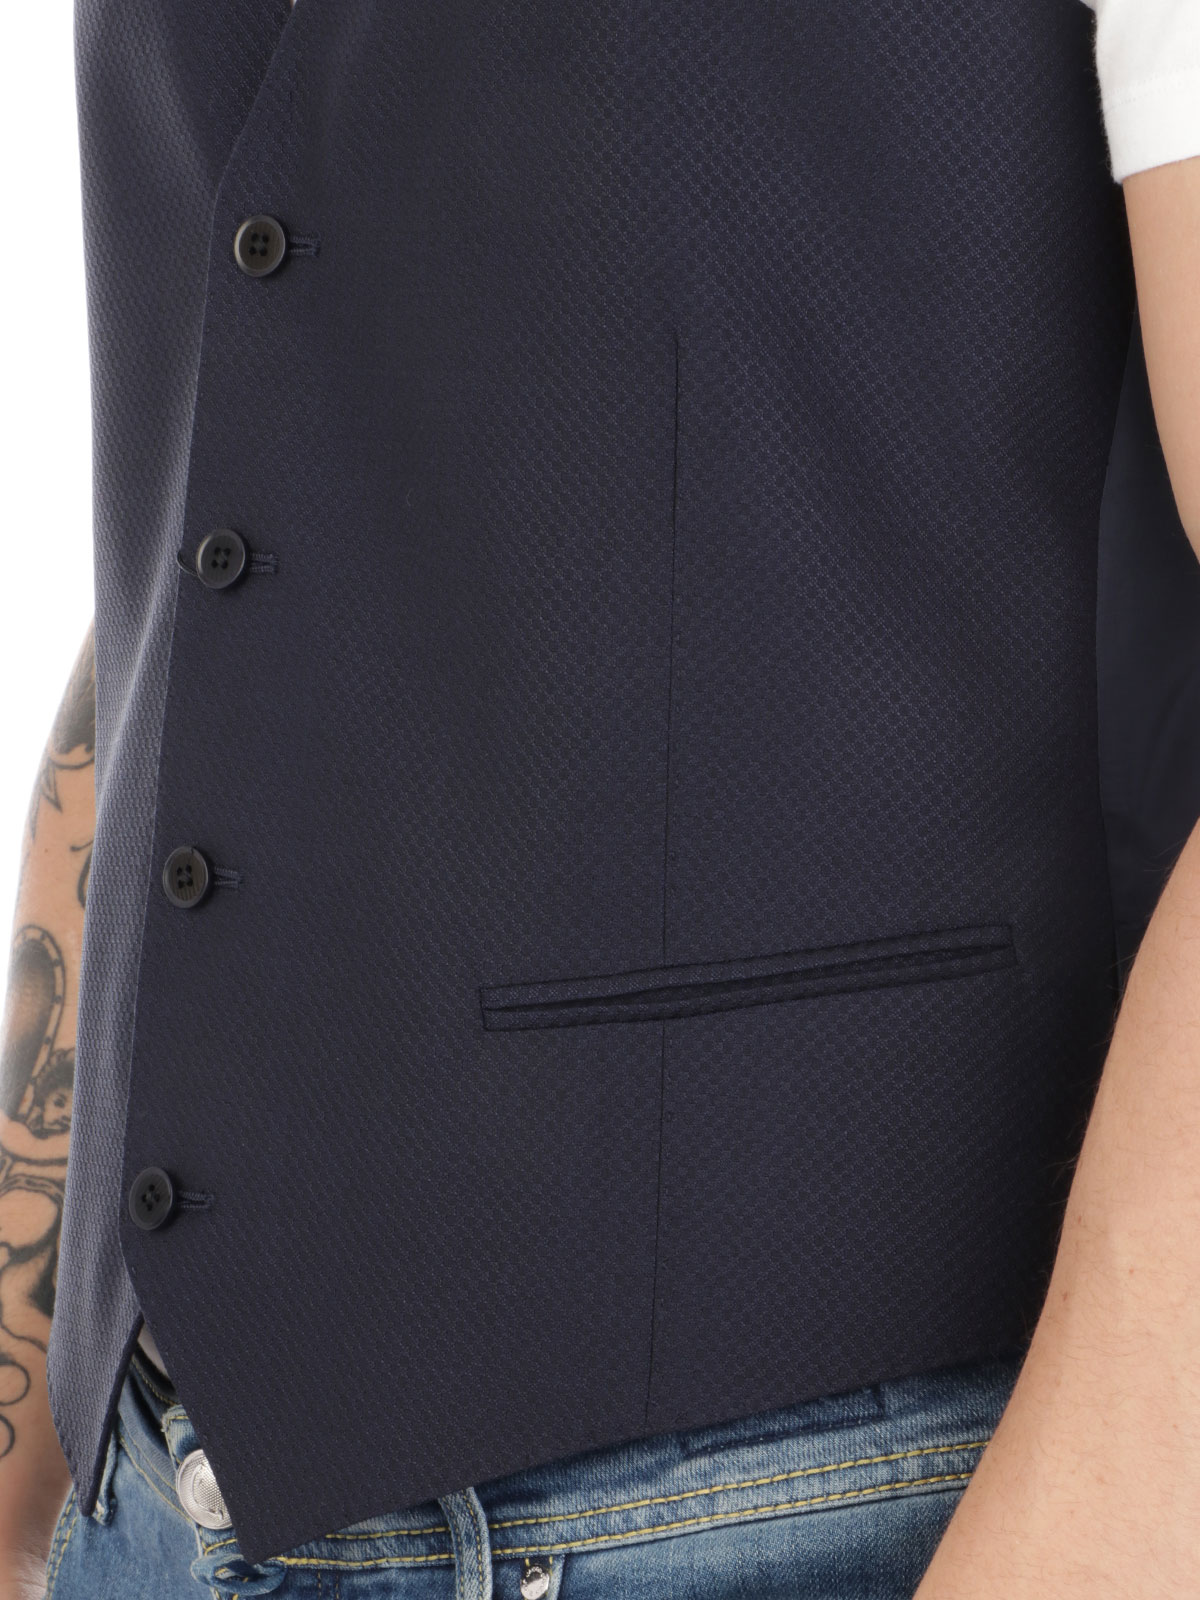 Picture of EMPORIO ARMANI | Men's Wool and Silk Waistcoat